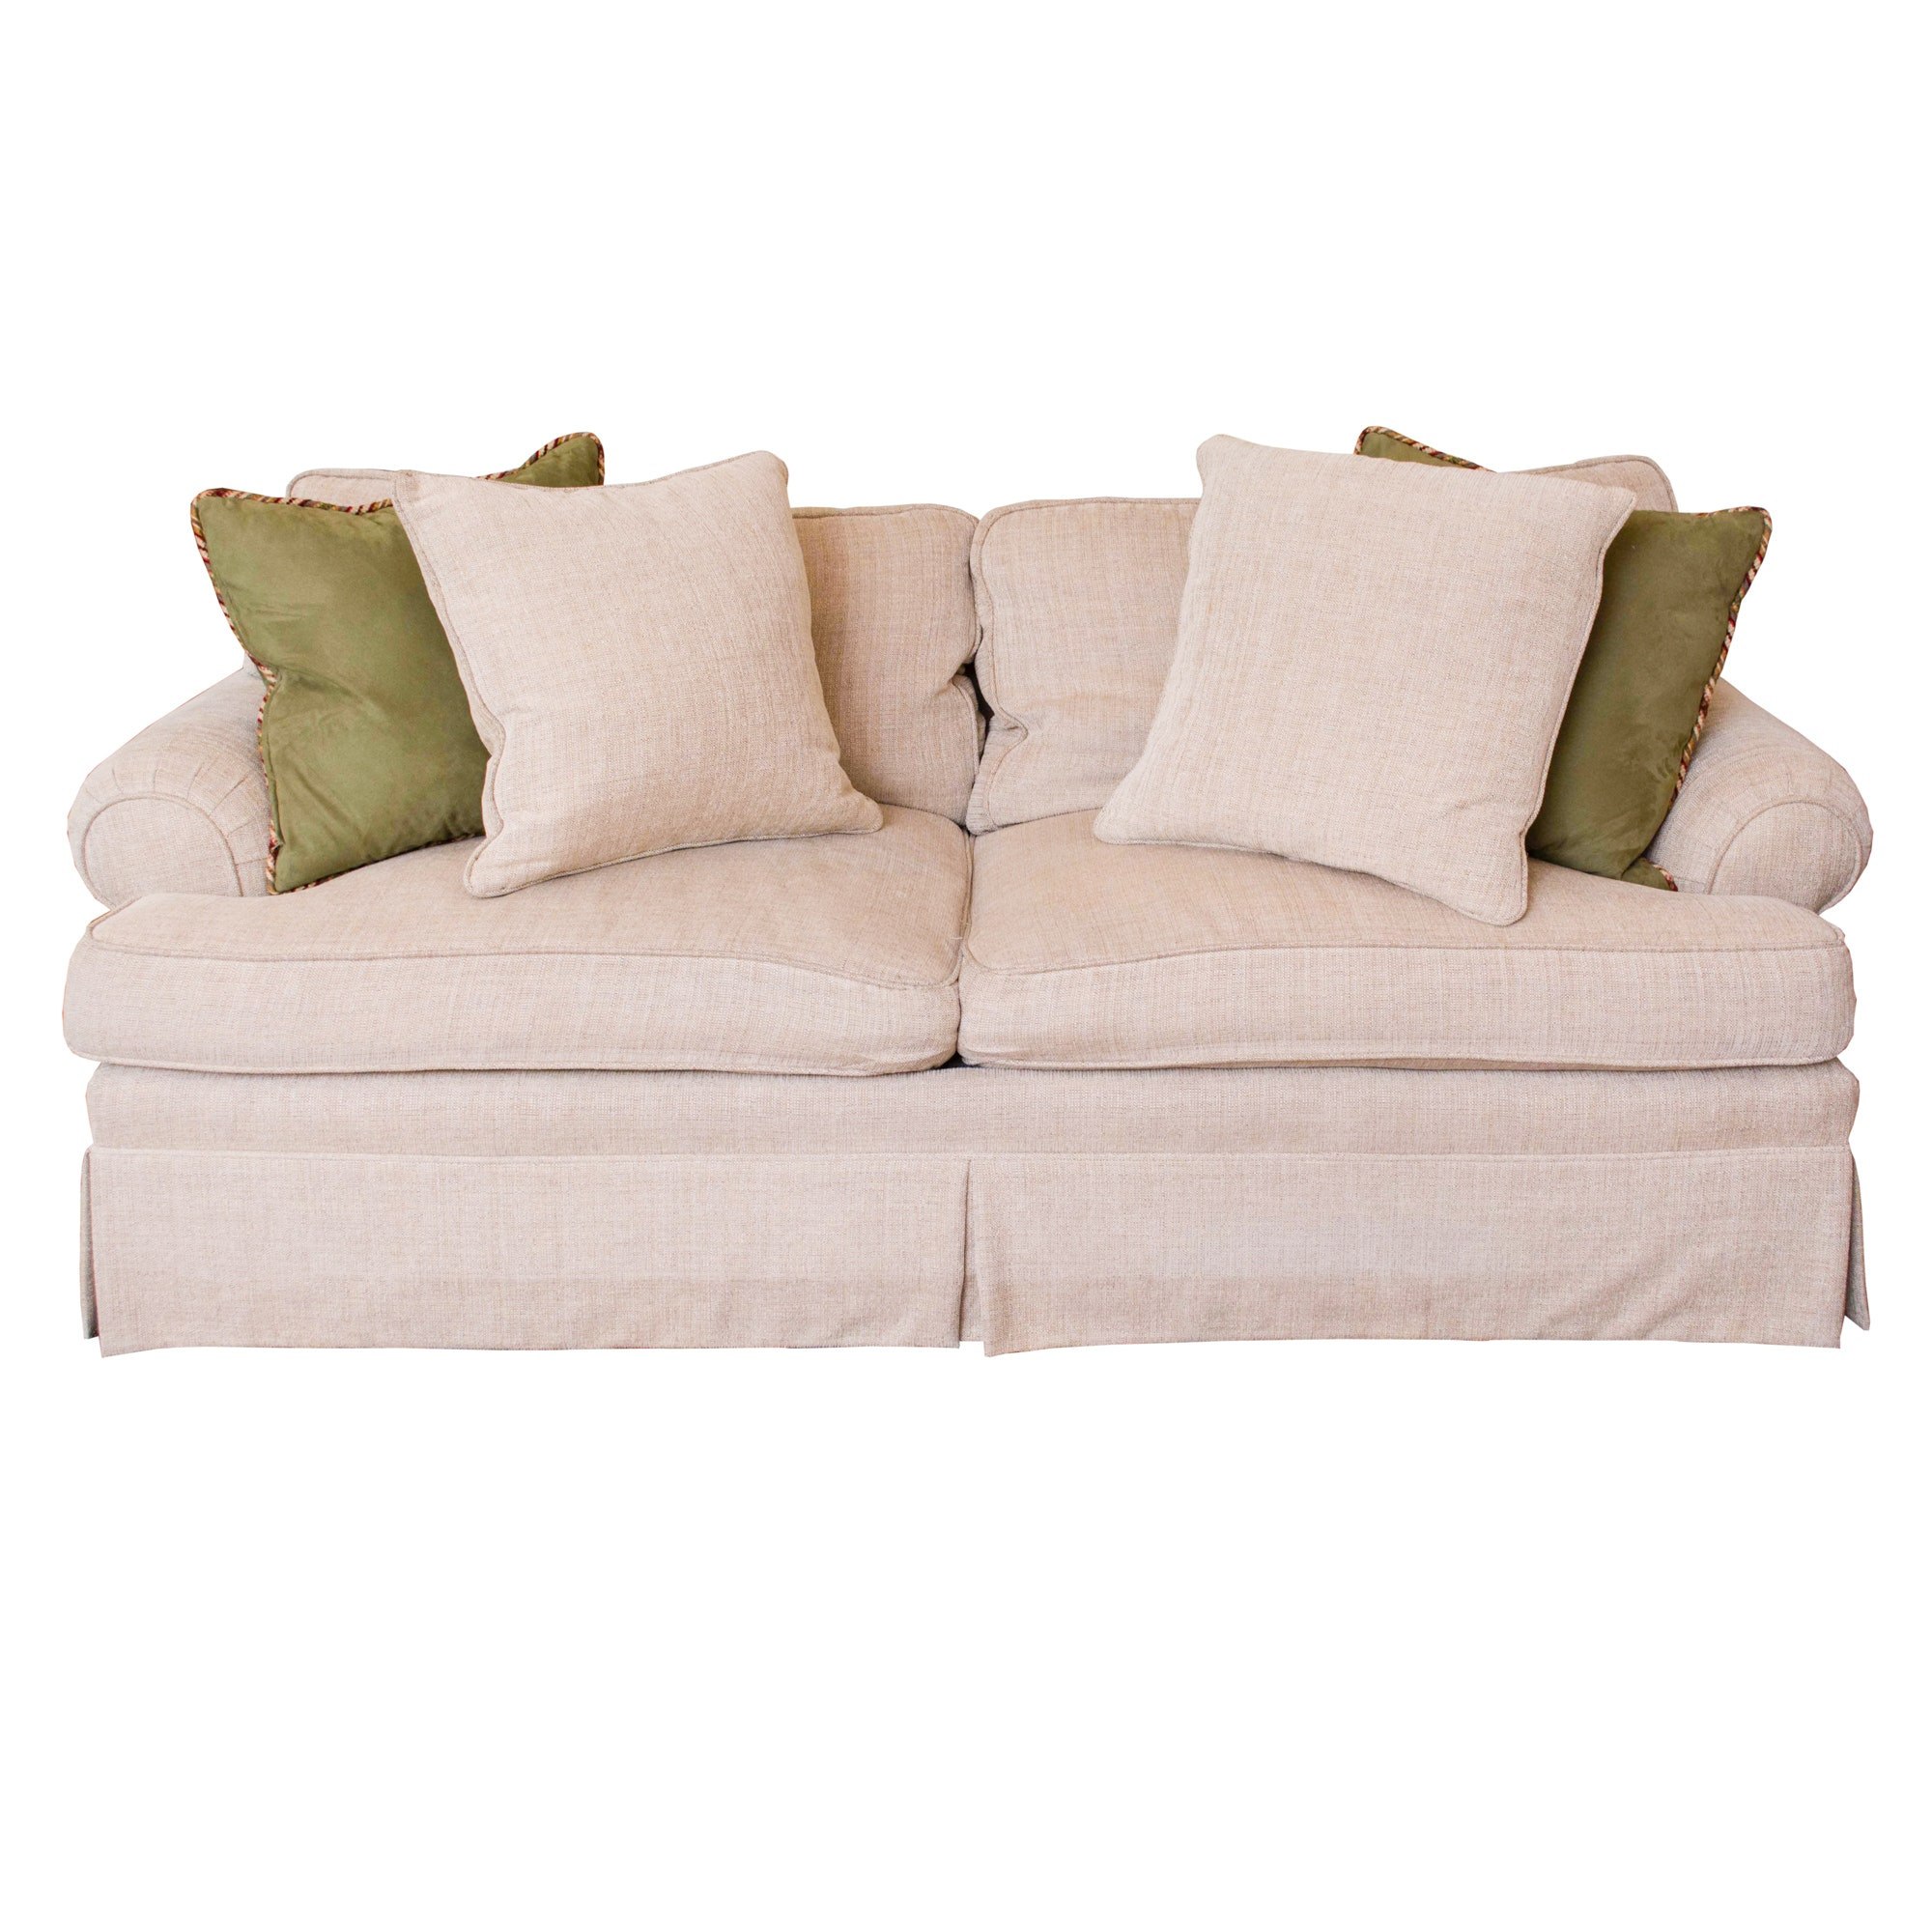 Upholstered Sofa by Century Furniture